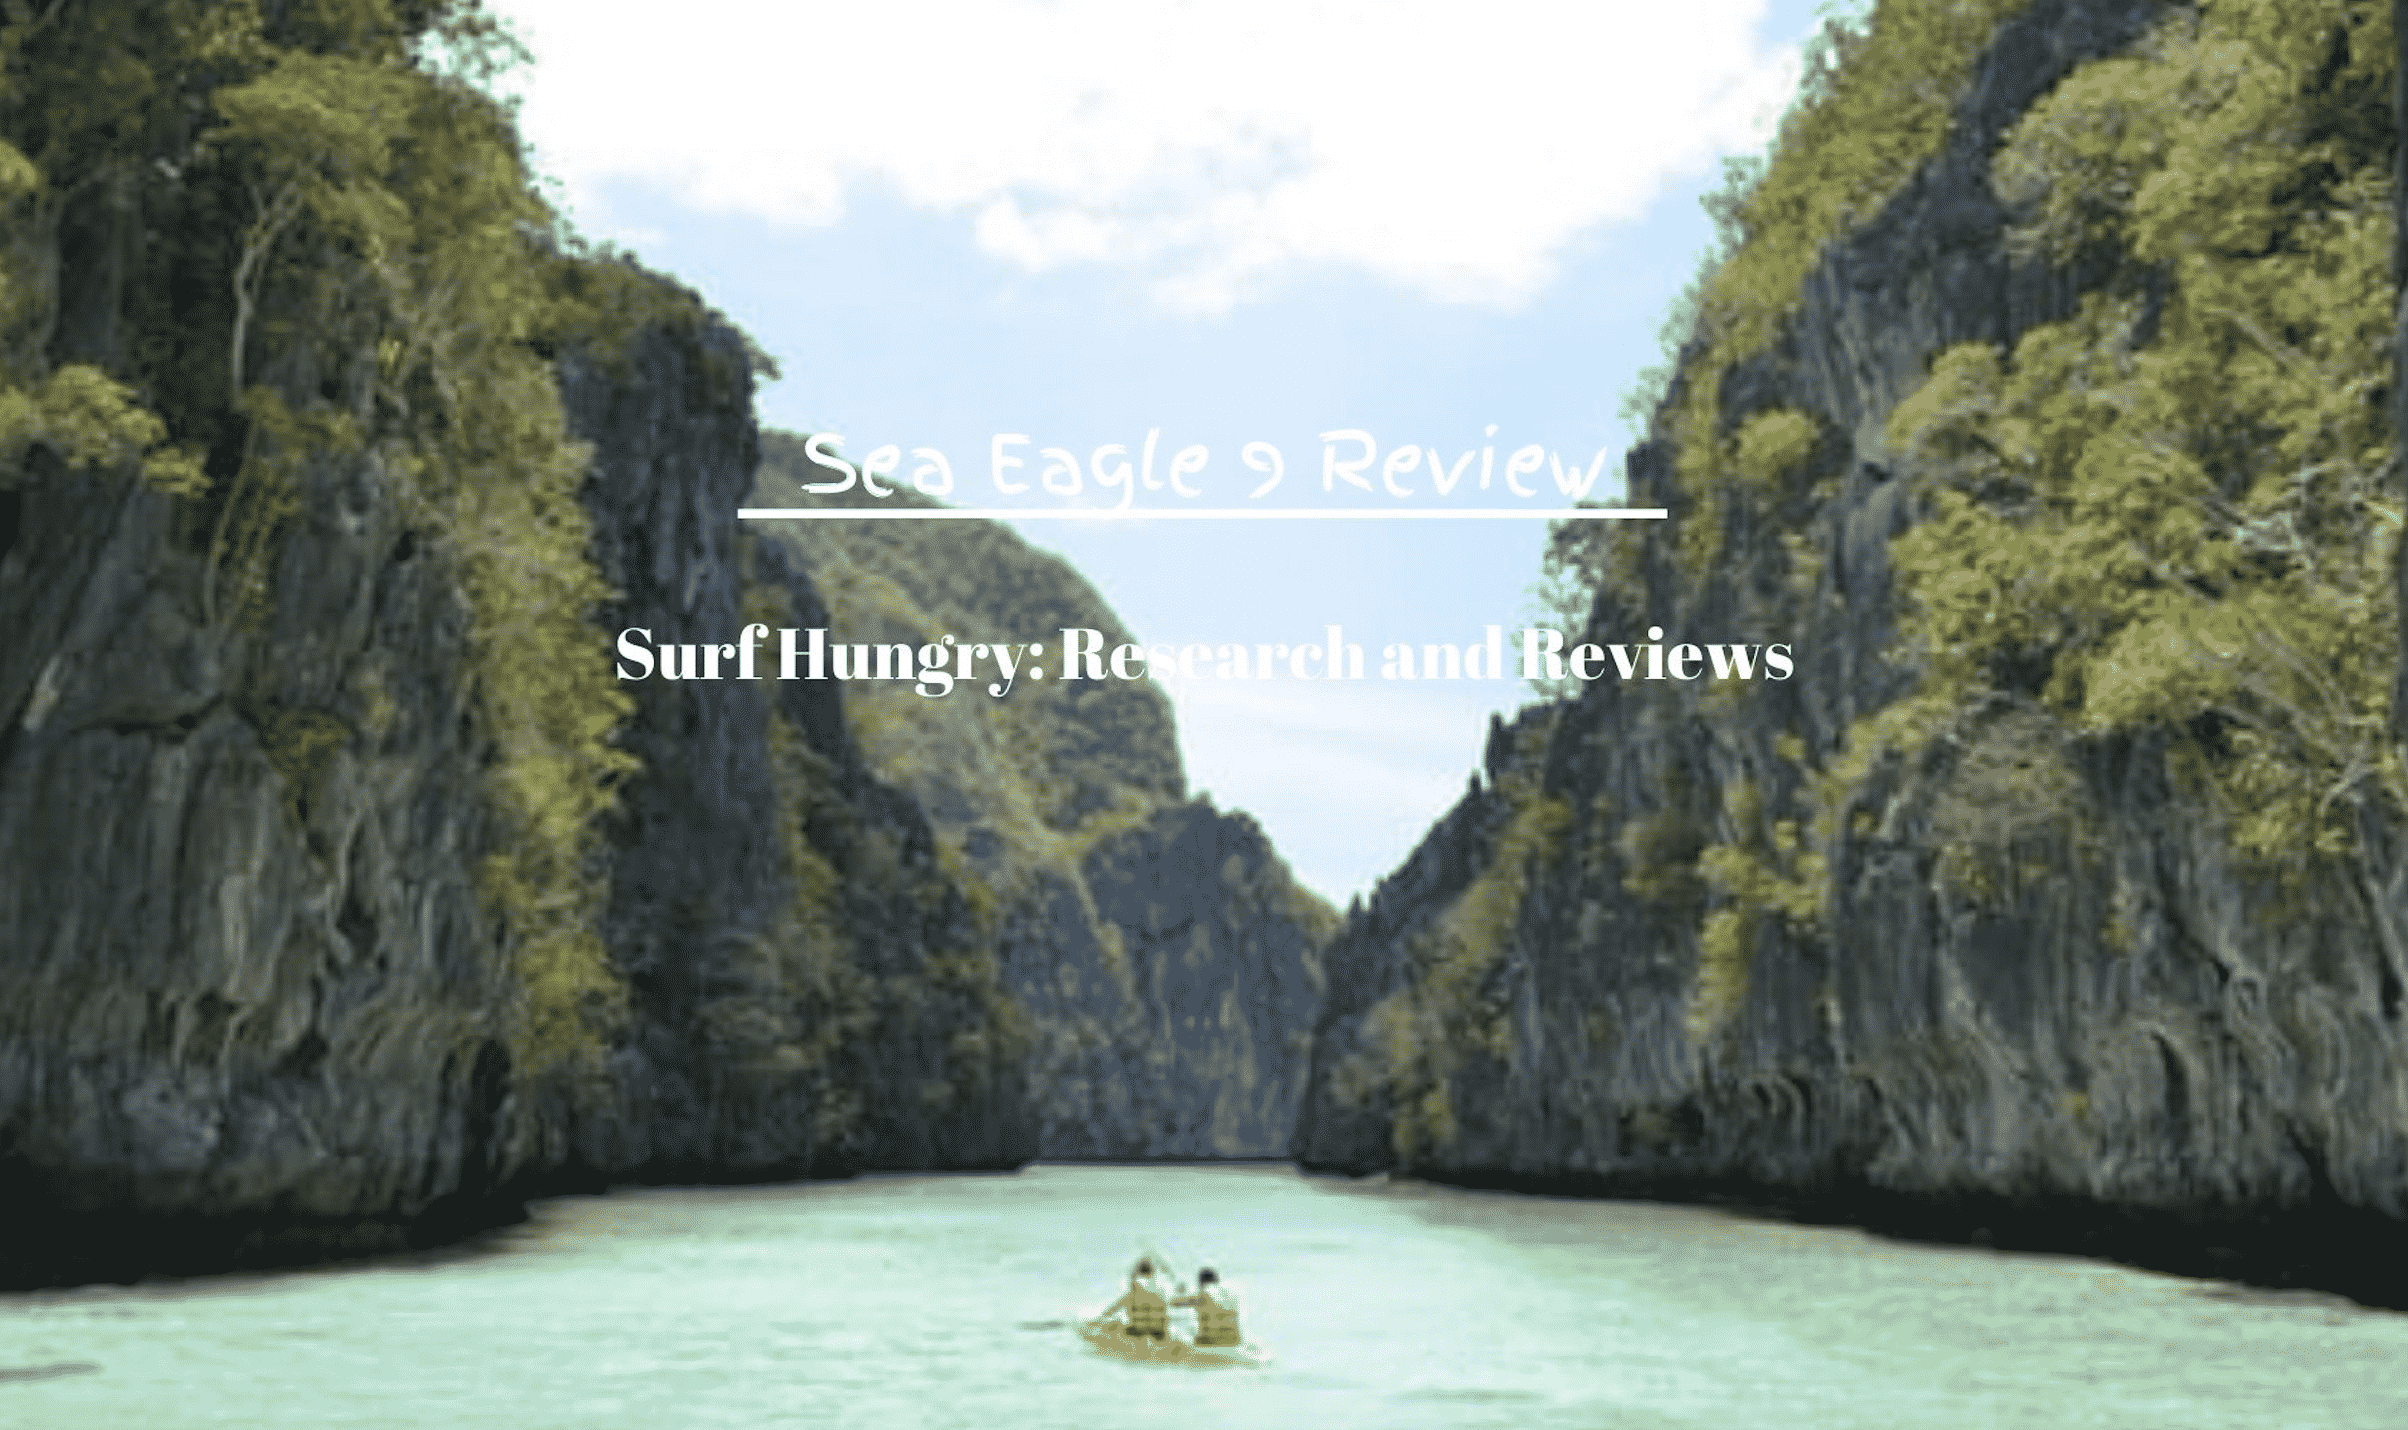 sea eagle 9 review